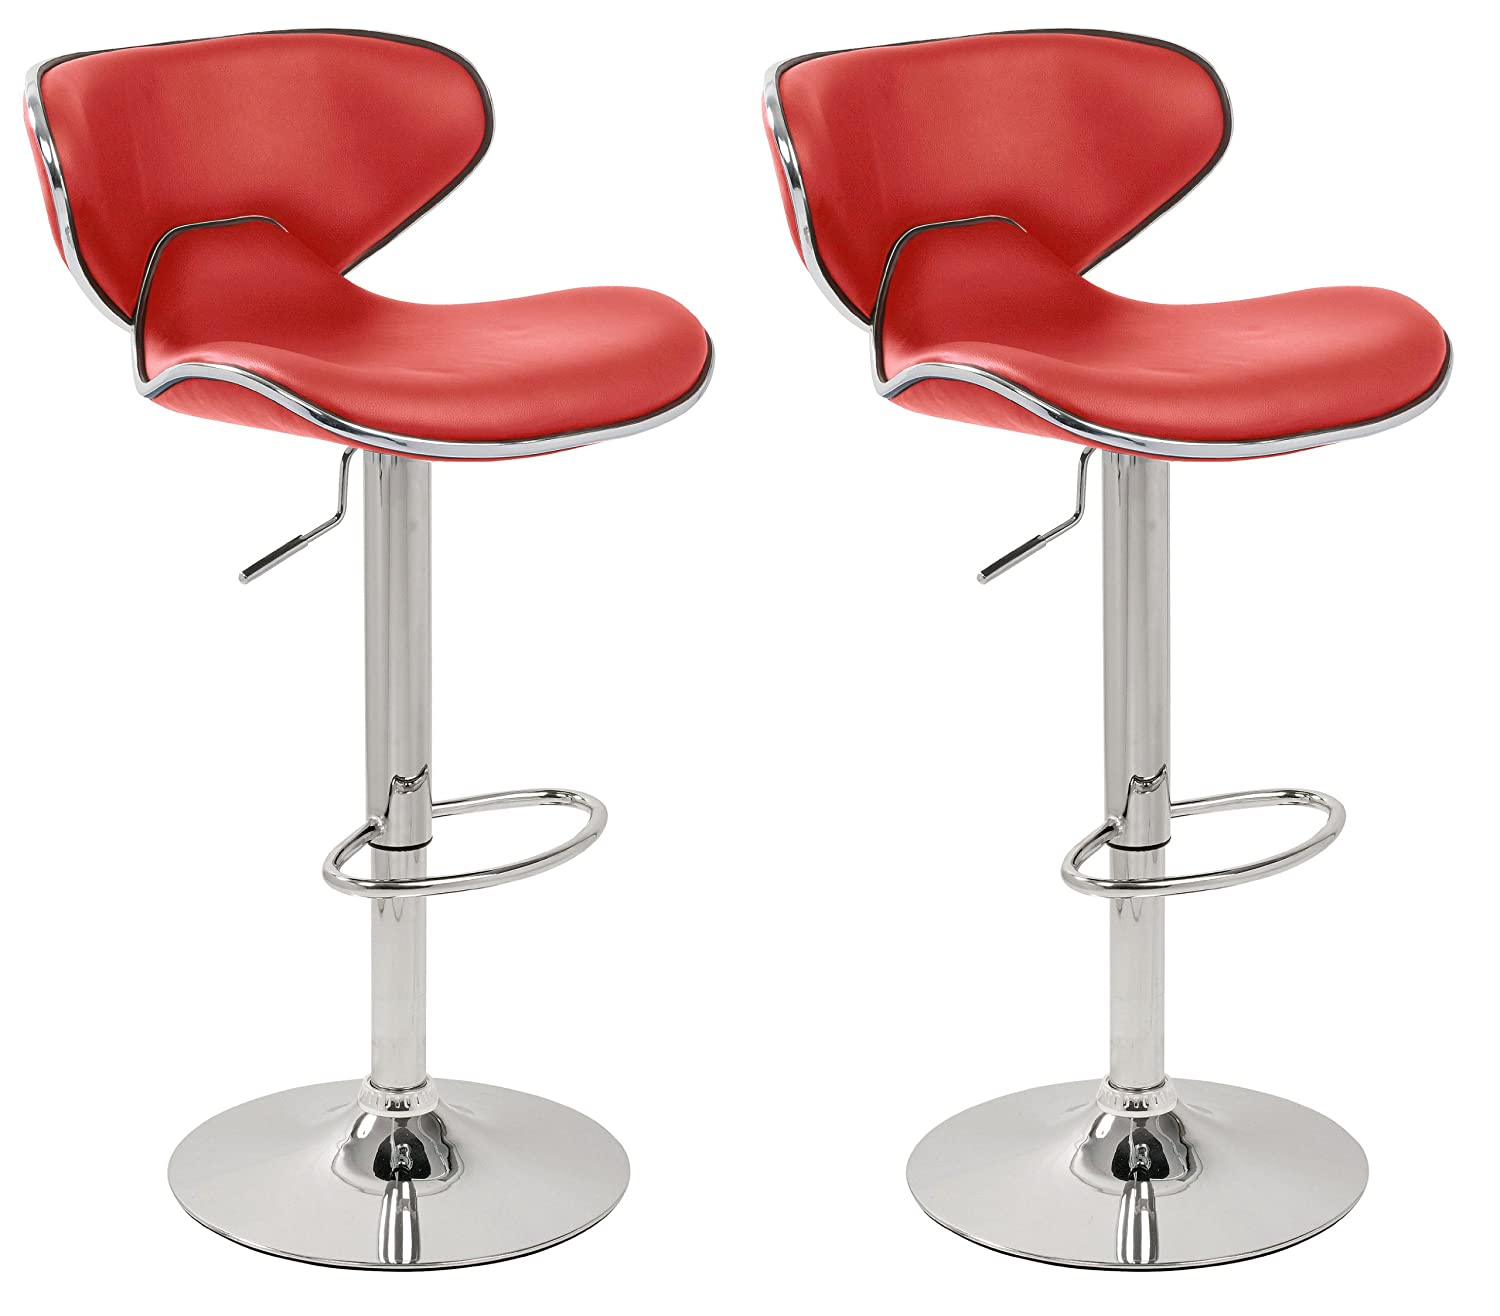 Set Of 2 Red U0026 Chrome Bahama Kitchen / Bar Stools. (Pair): Amazon.co.uk:  Kitchen U0026 Home